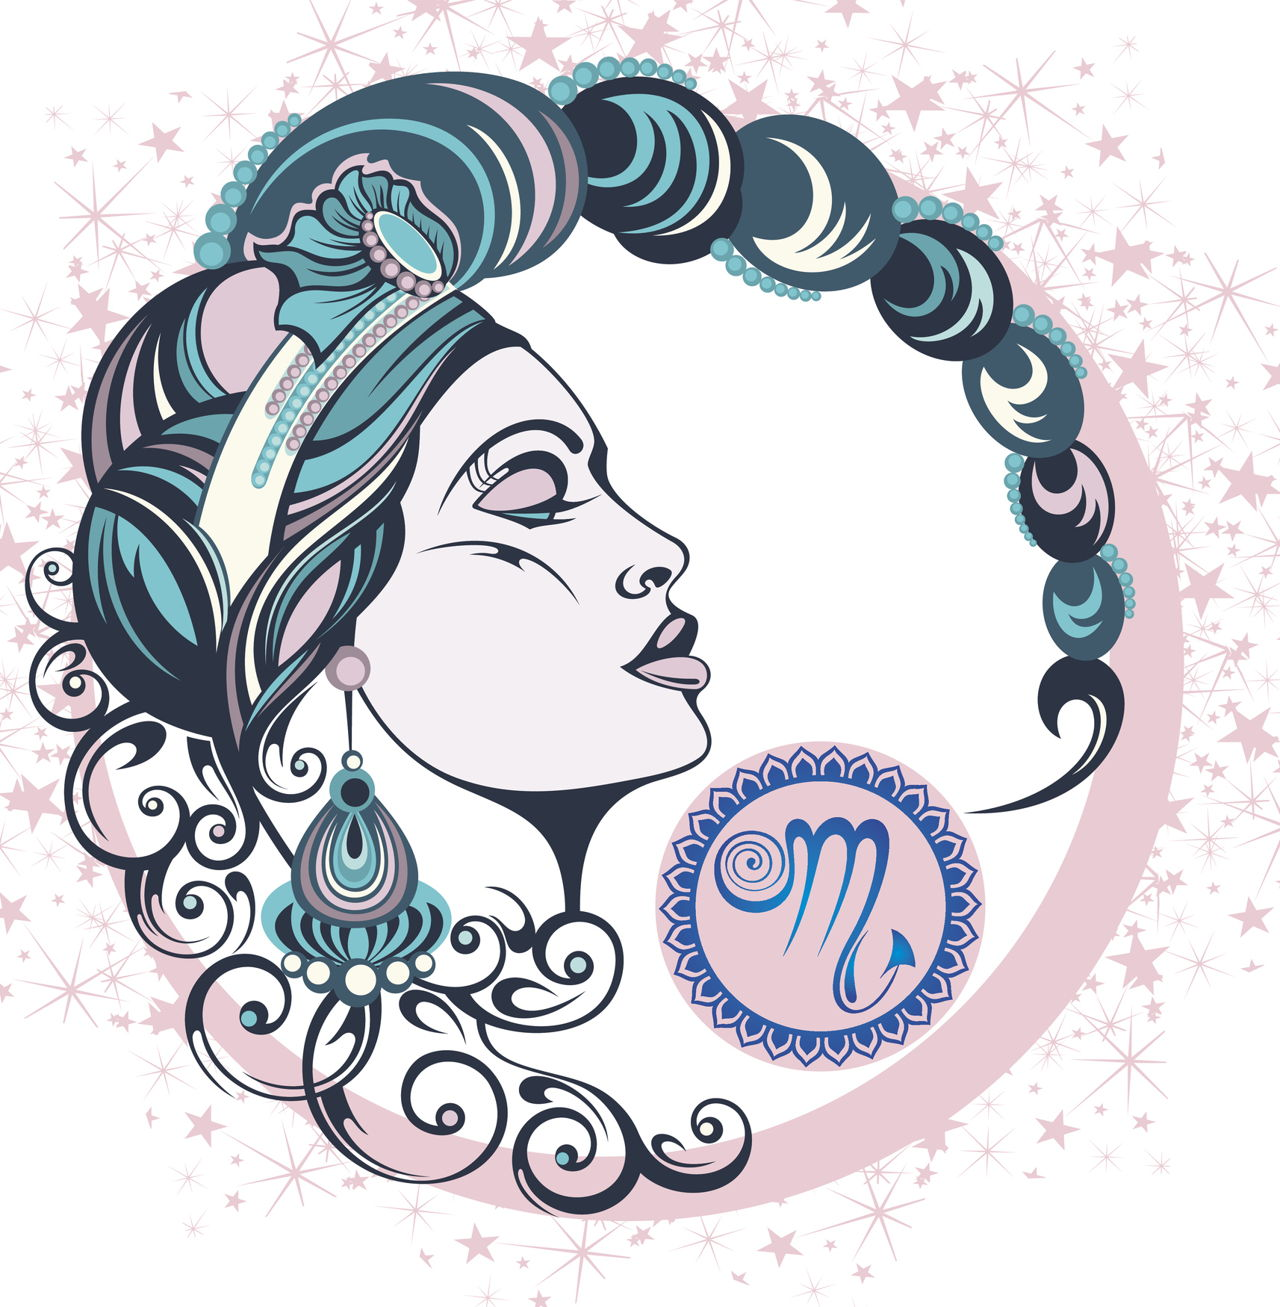 Trustworthy. Mysterious. Independent. These are some of the qualities of Scorpio. Today's full moon will show you other traits, including powerful, sexy, and passionate.